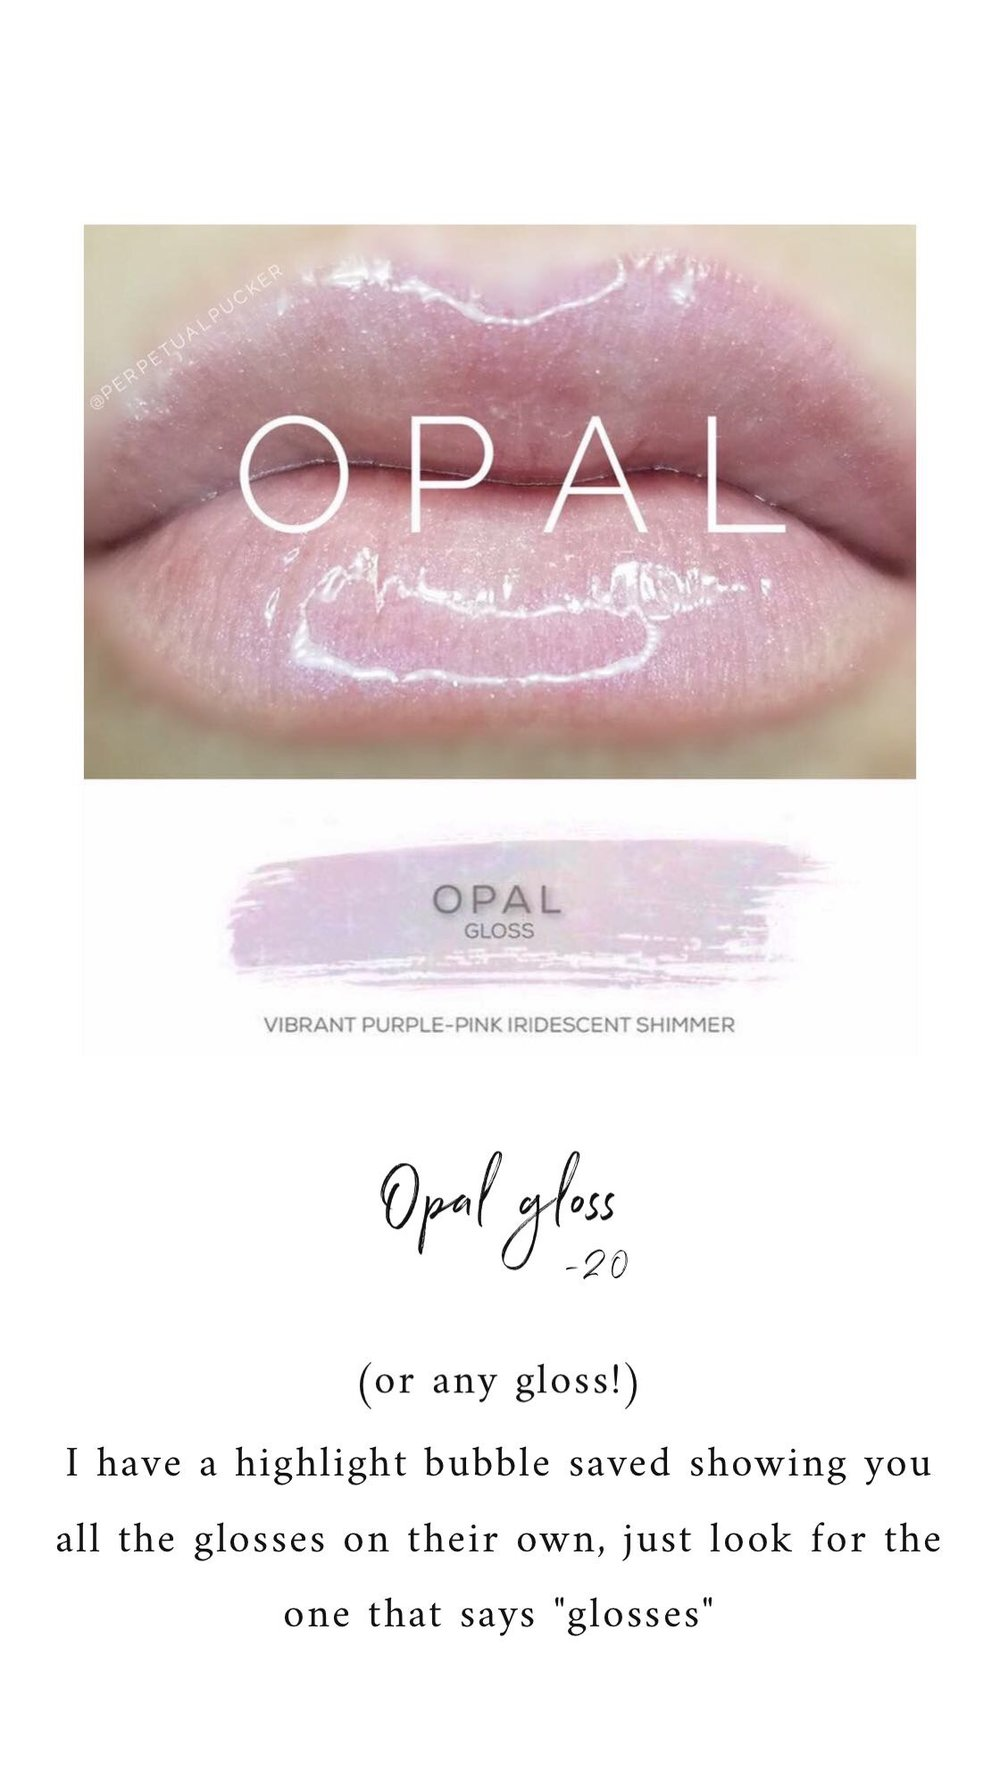 Opal Lip Gloss by This Beauty Called Ours